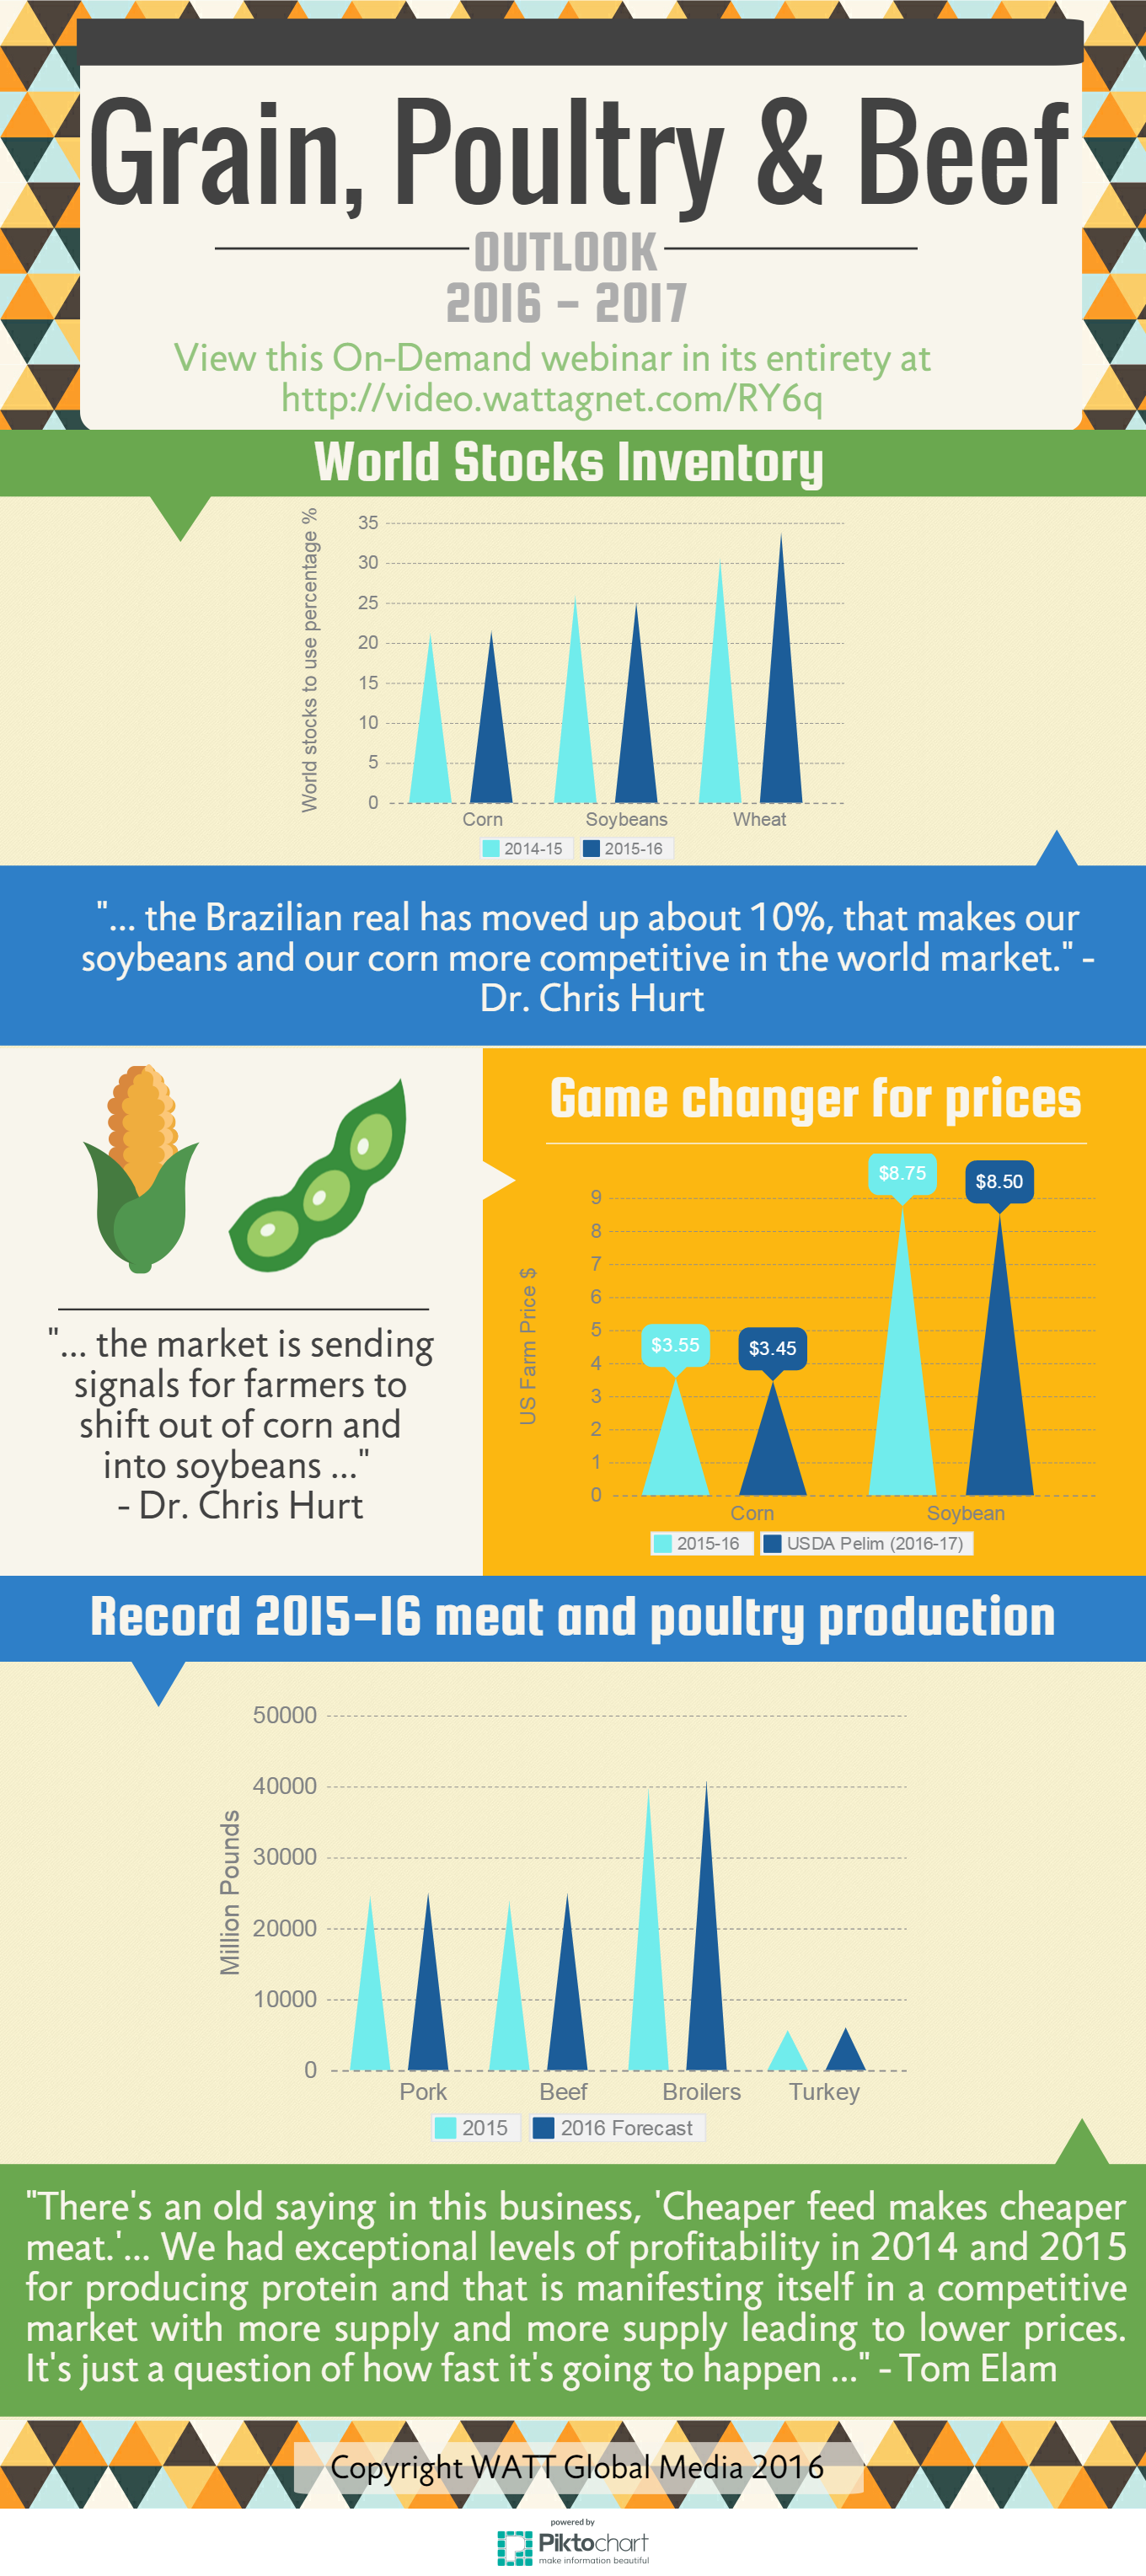 grain-poultry-and-beef-outlook-2016-highlights-v3